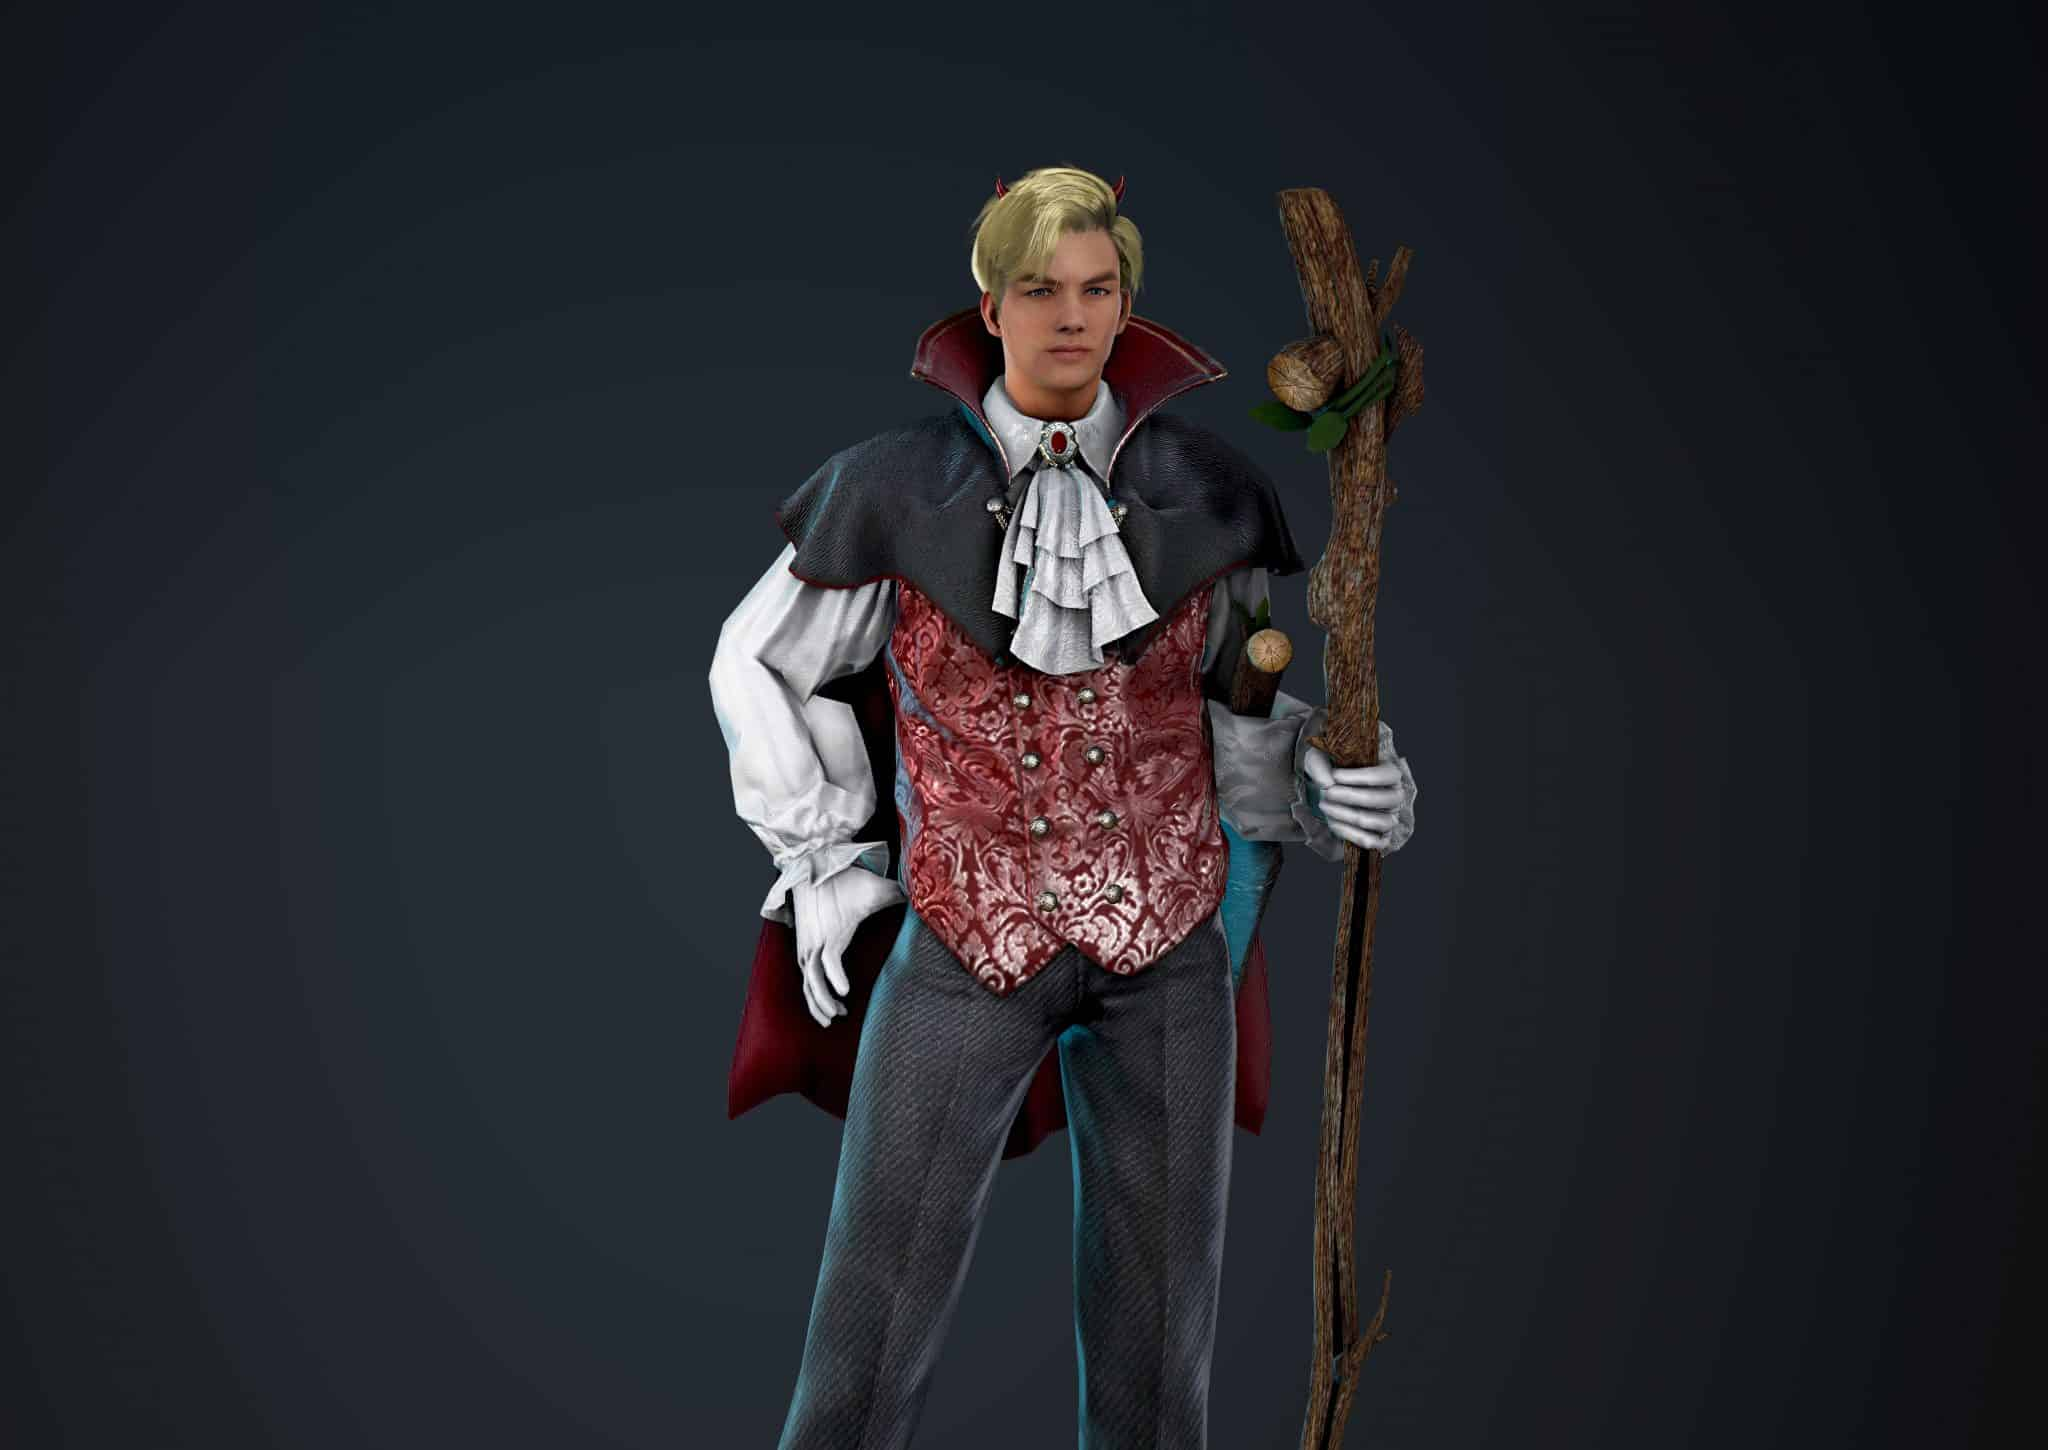 Wizard Bloody Suit, Bloody Outfit Set, Halloween 2018, Black Desert Online